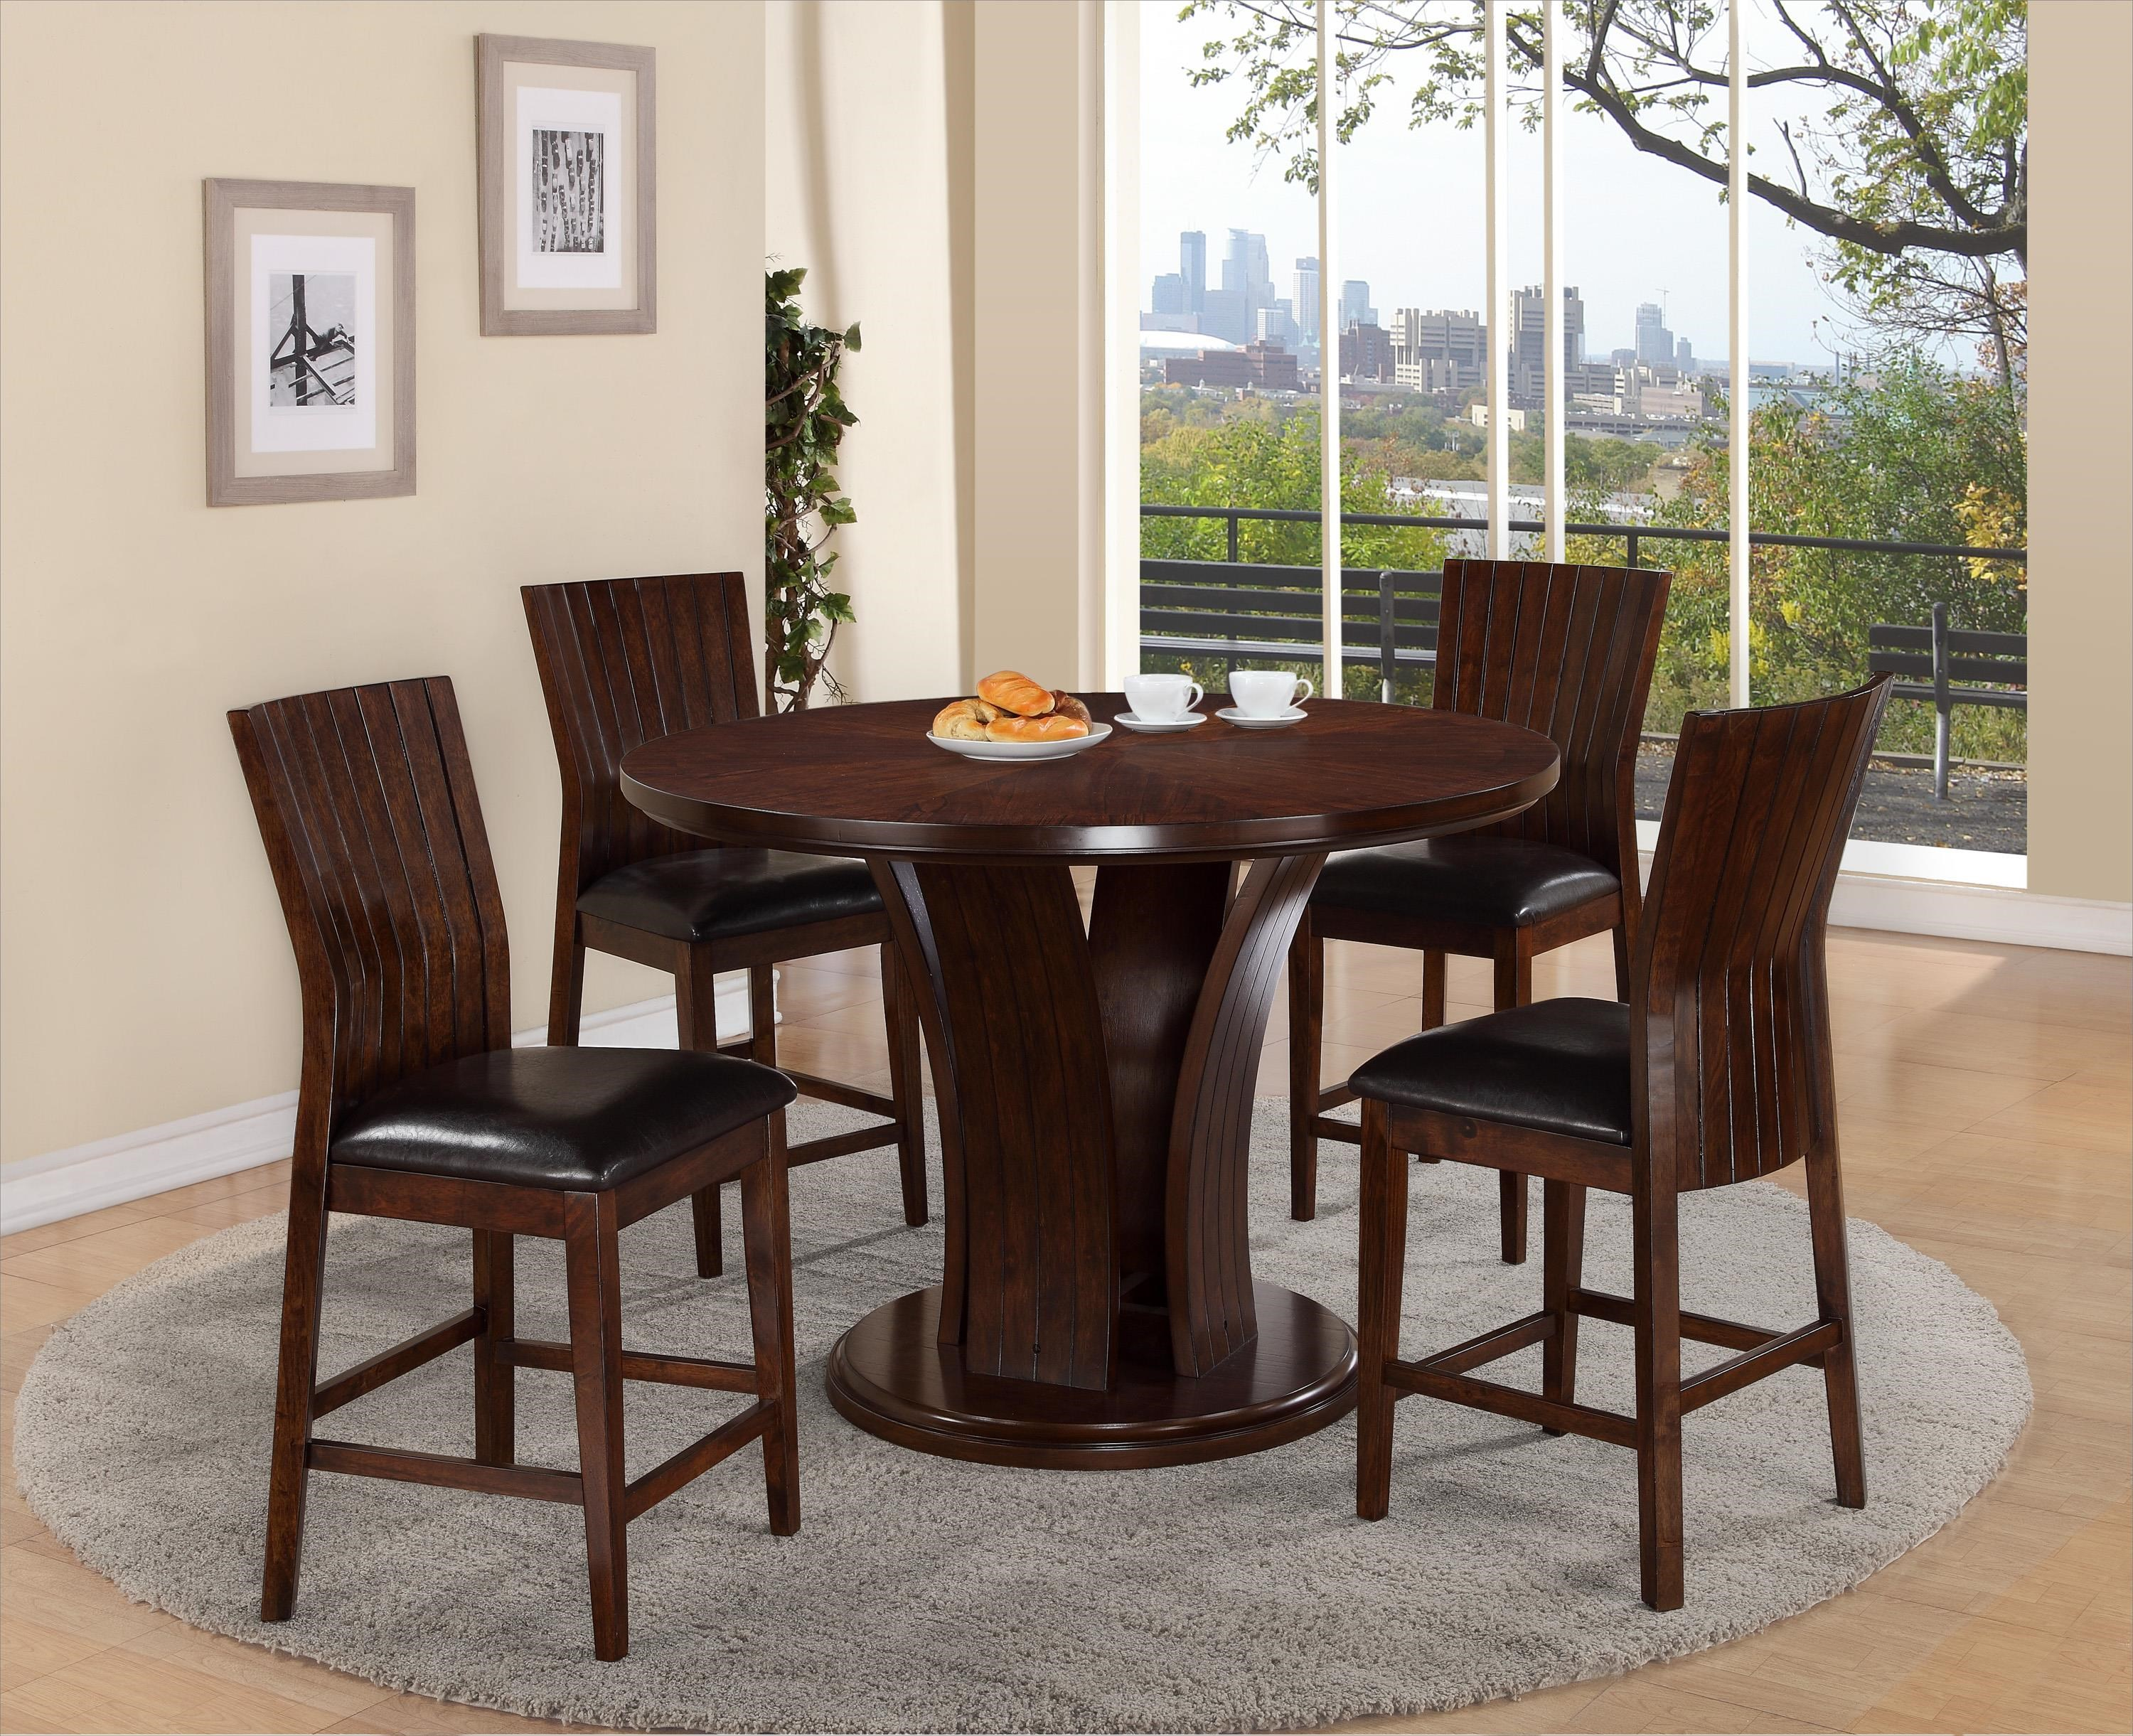 Crown Mark Daria Round Pub Height Dining Table and Stool Set & Crown Mark Daria Round Pub Height Dining Table and Stool Set ...